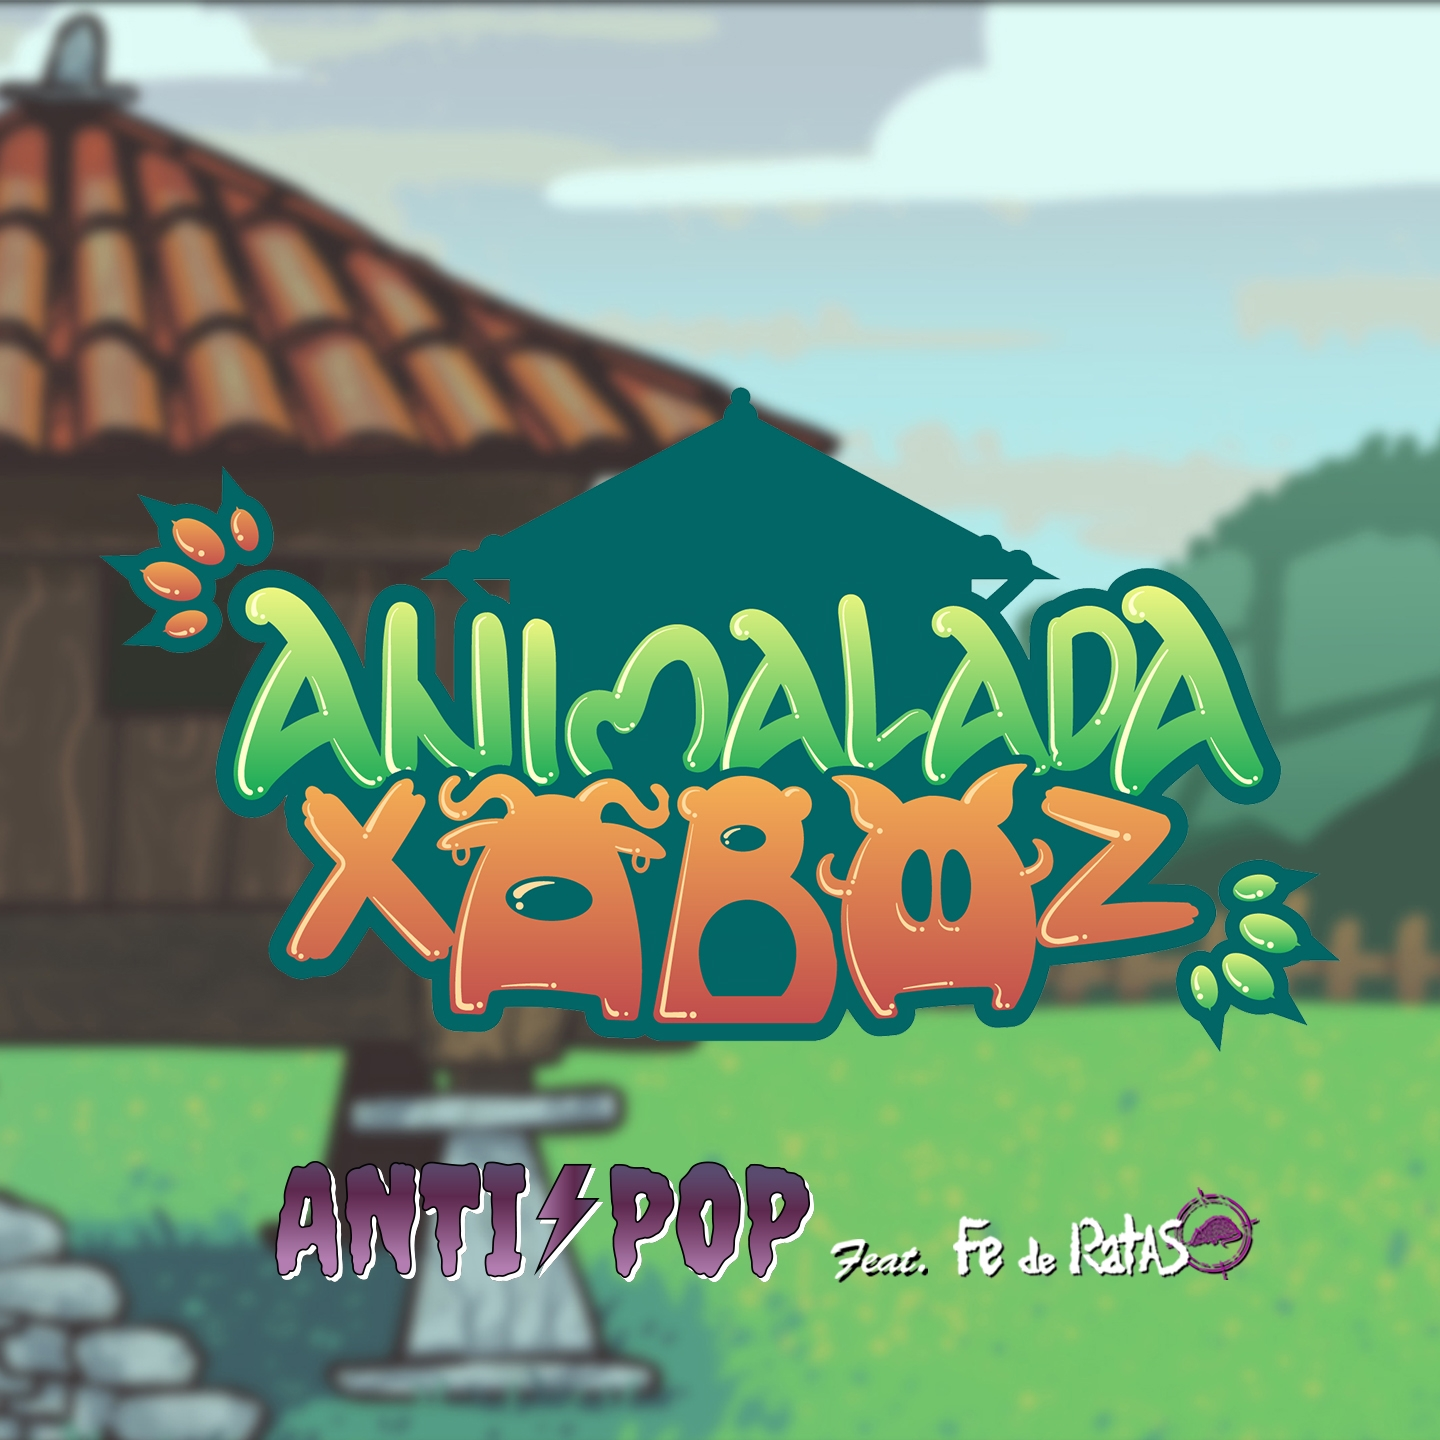 Anti-Pop ft. Fe de Ratas - Animalada xabaz